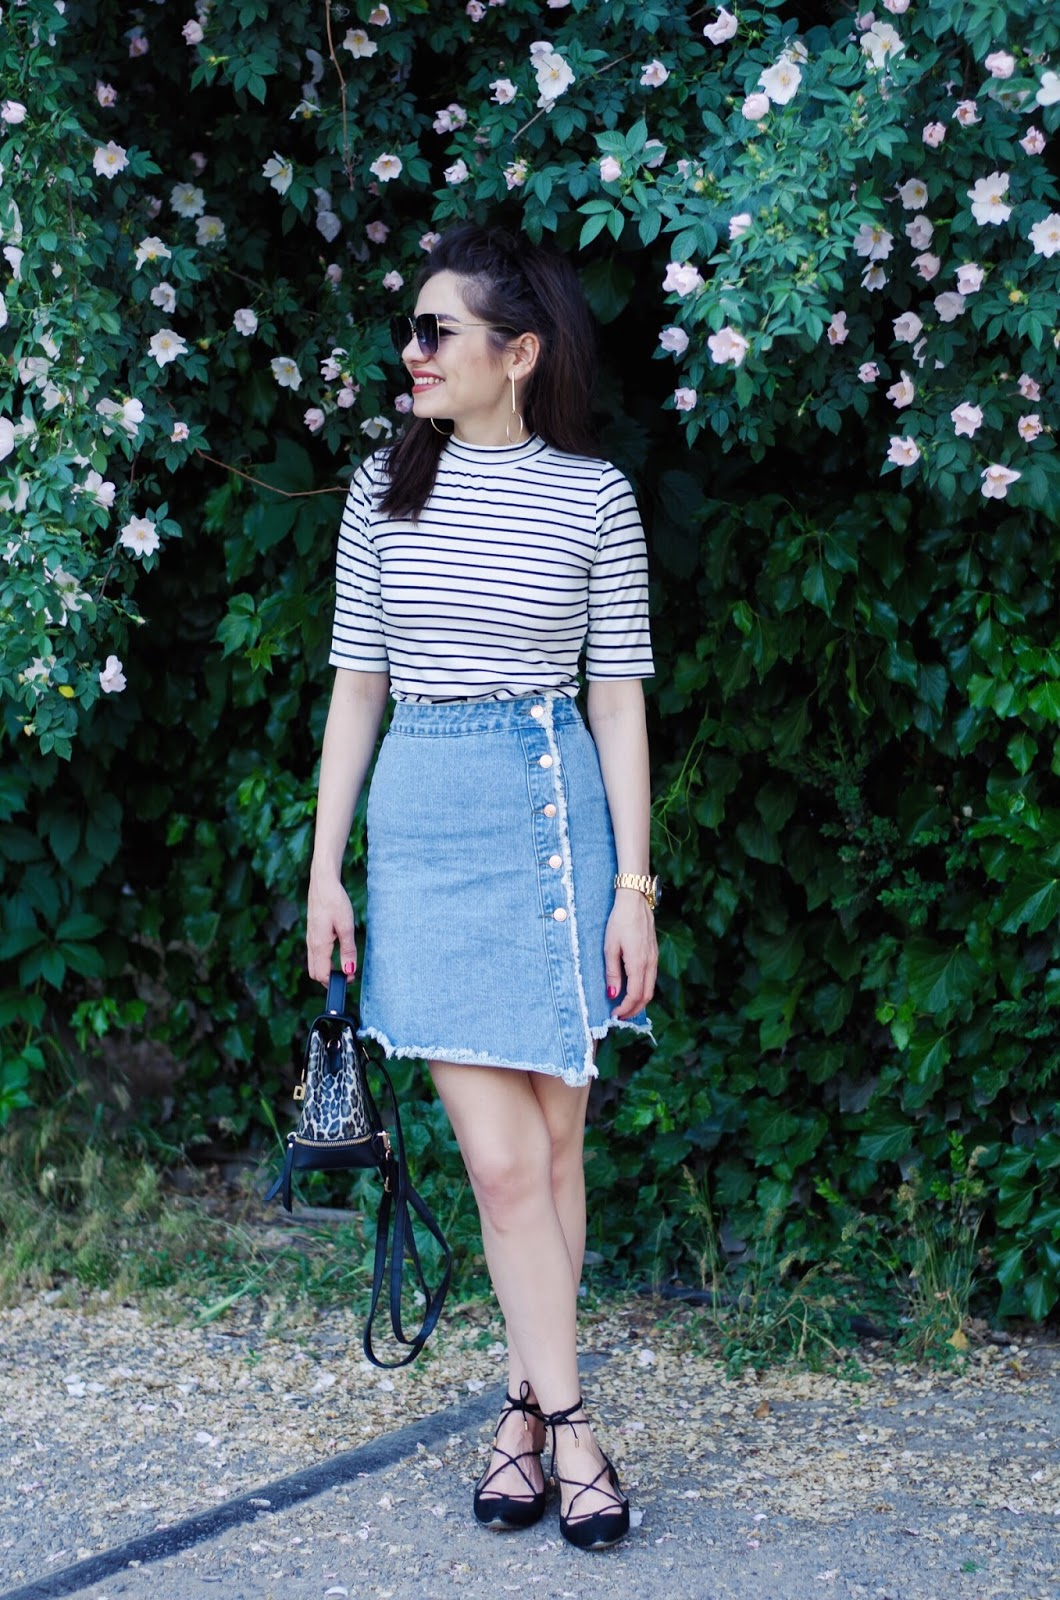 fashion blogger diyorasnotes diyora beta denim skirt striped top backpack